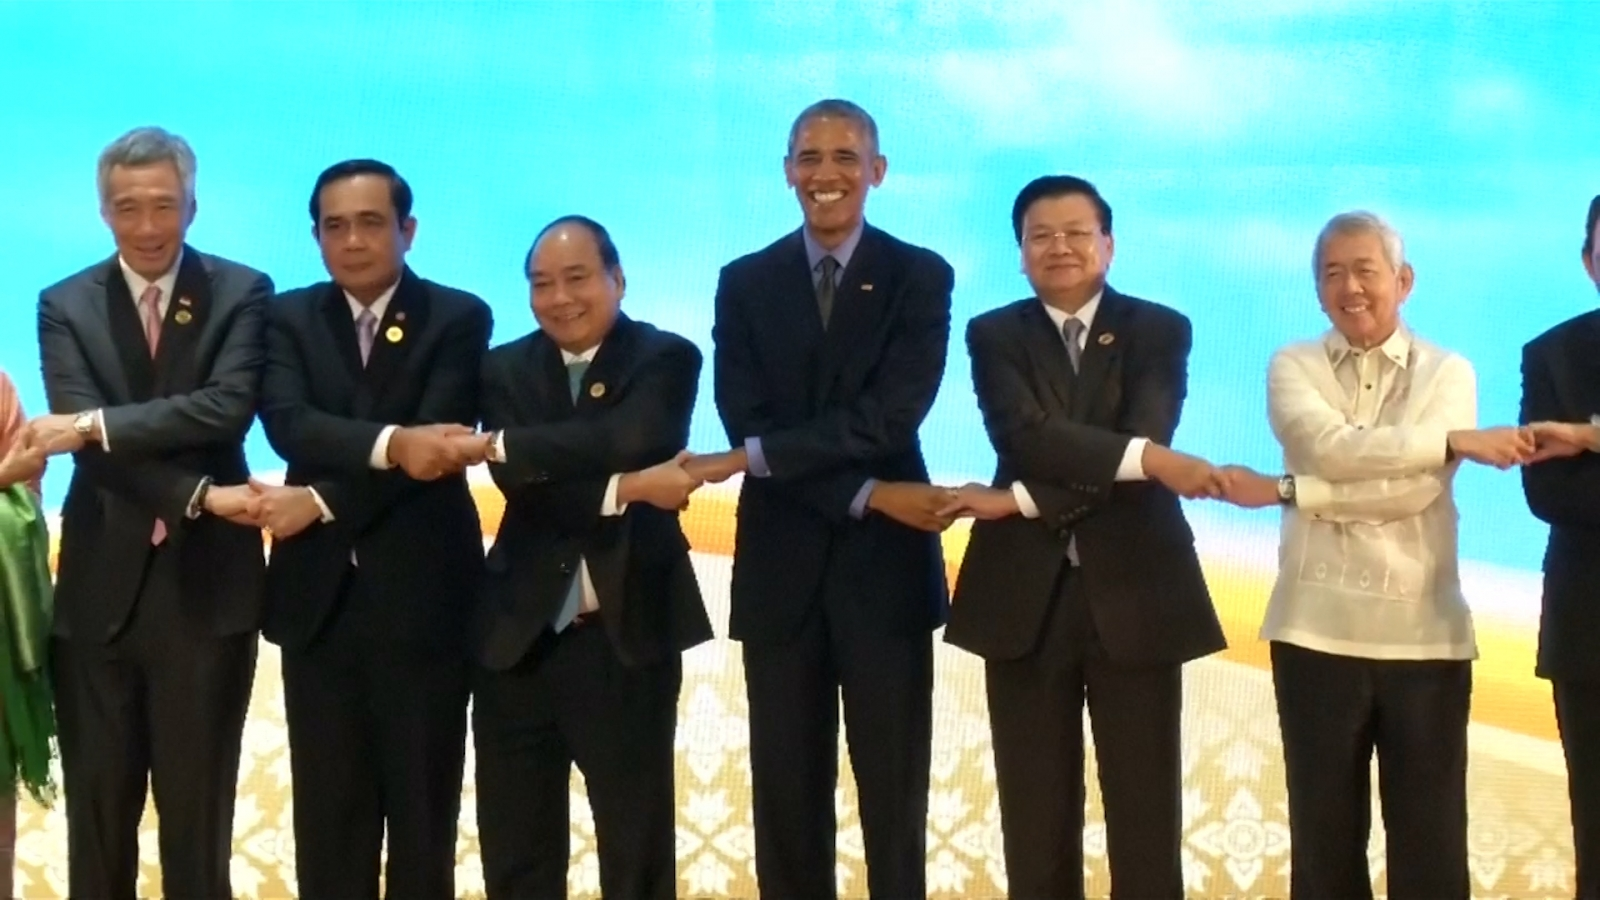 Obama attends ASEAN meeting in Laos